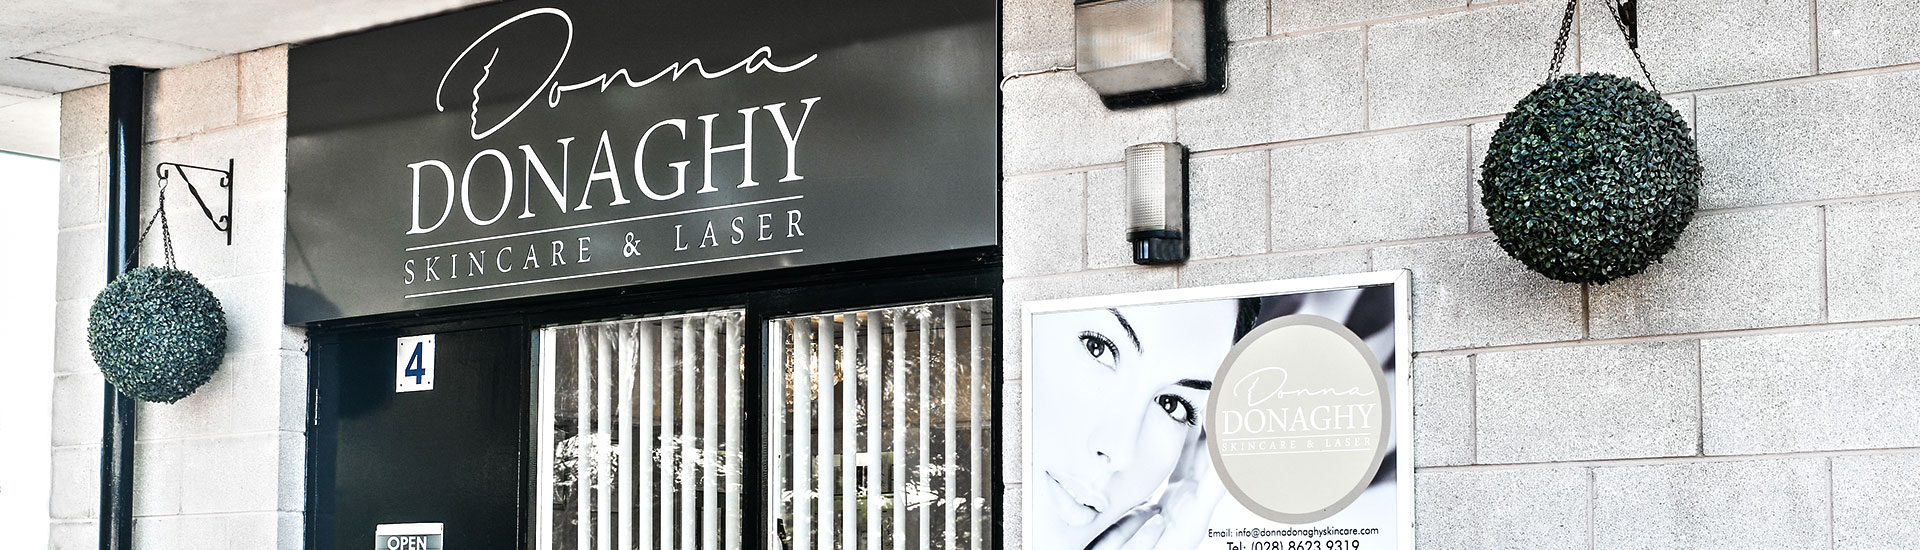 Donna Donaghy Skincare and Laser, Cookstown, County Tyrone, Northern Ireland